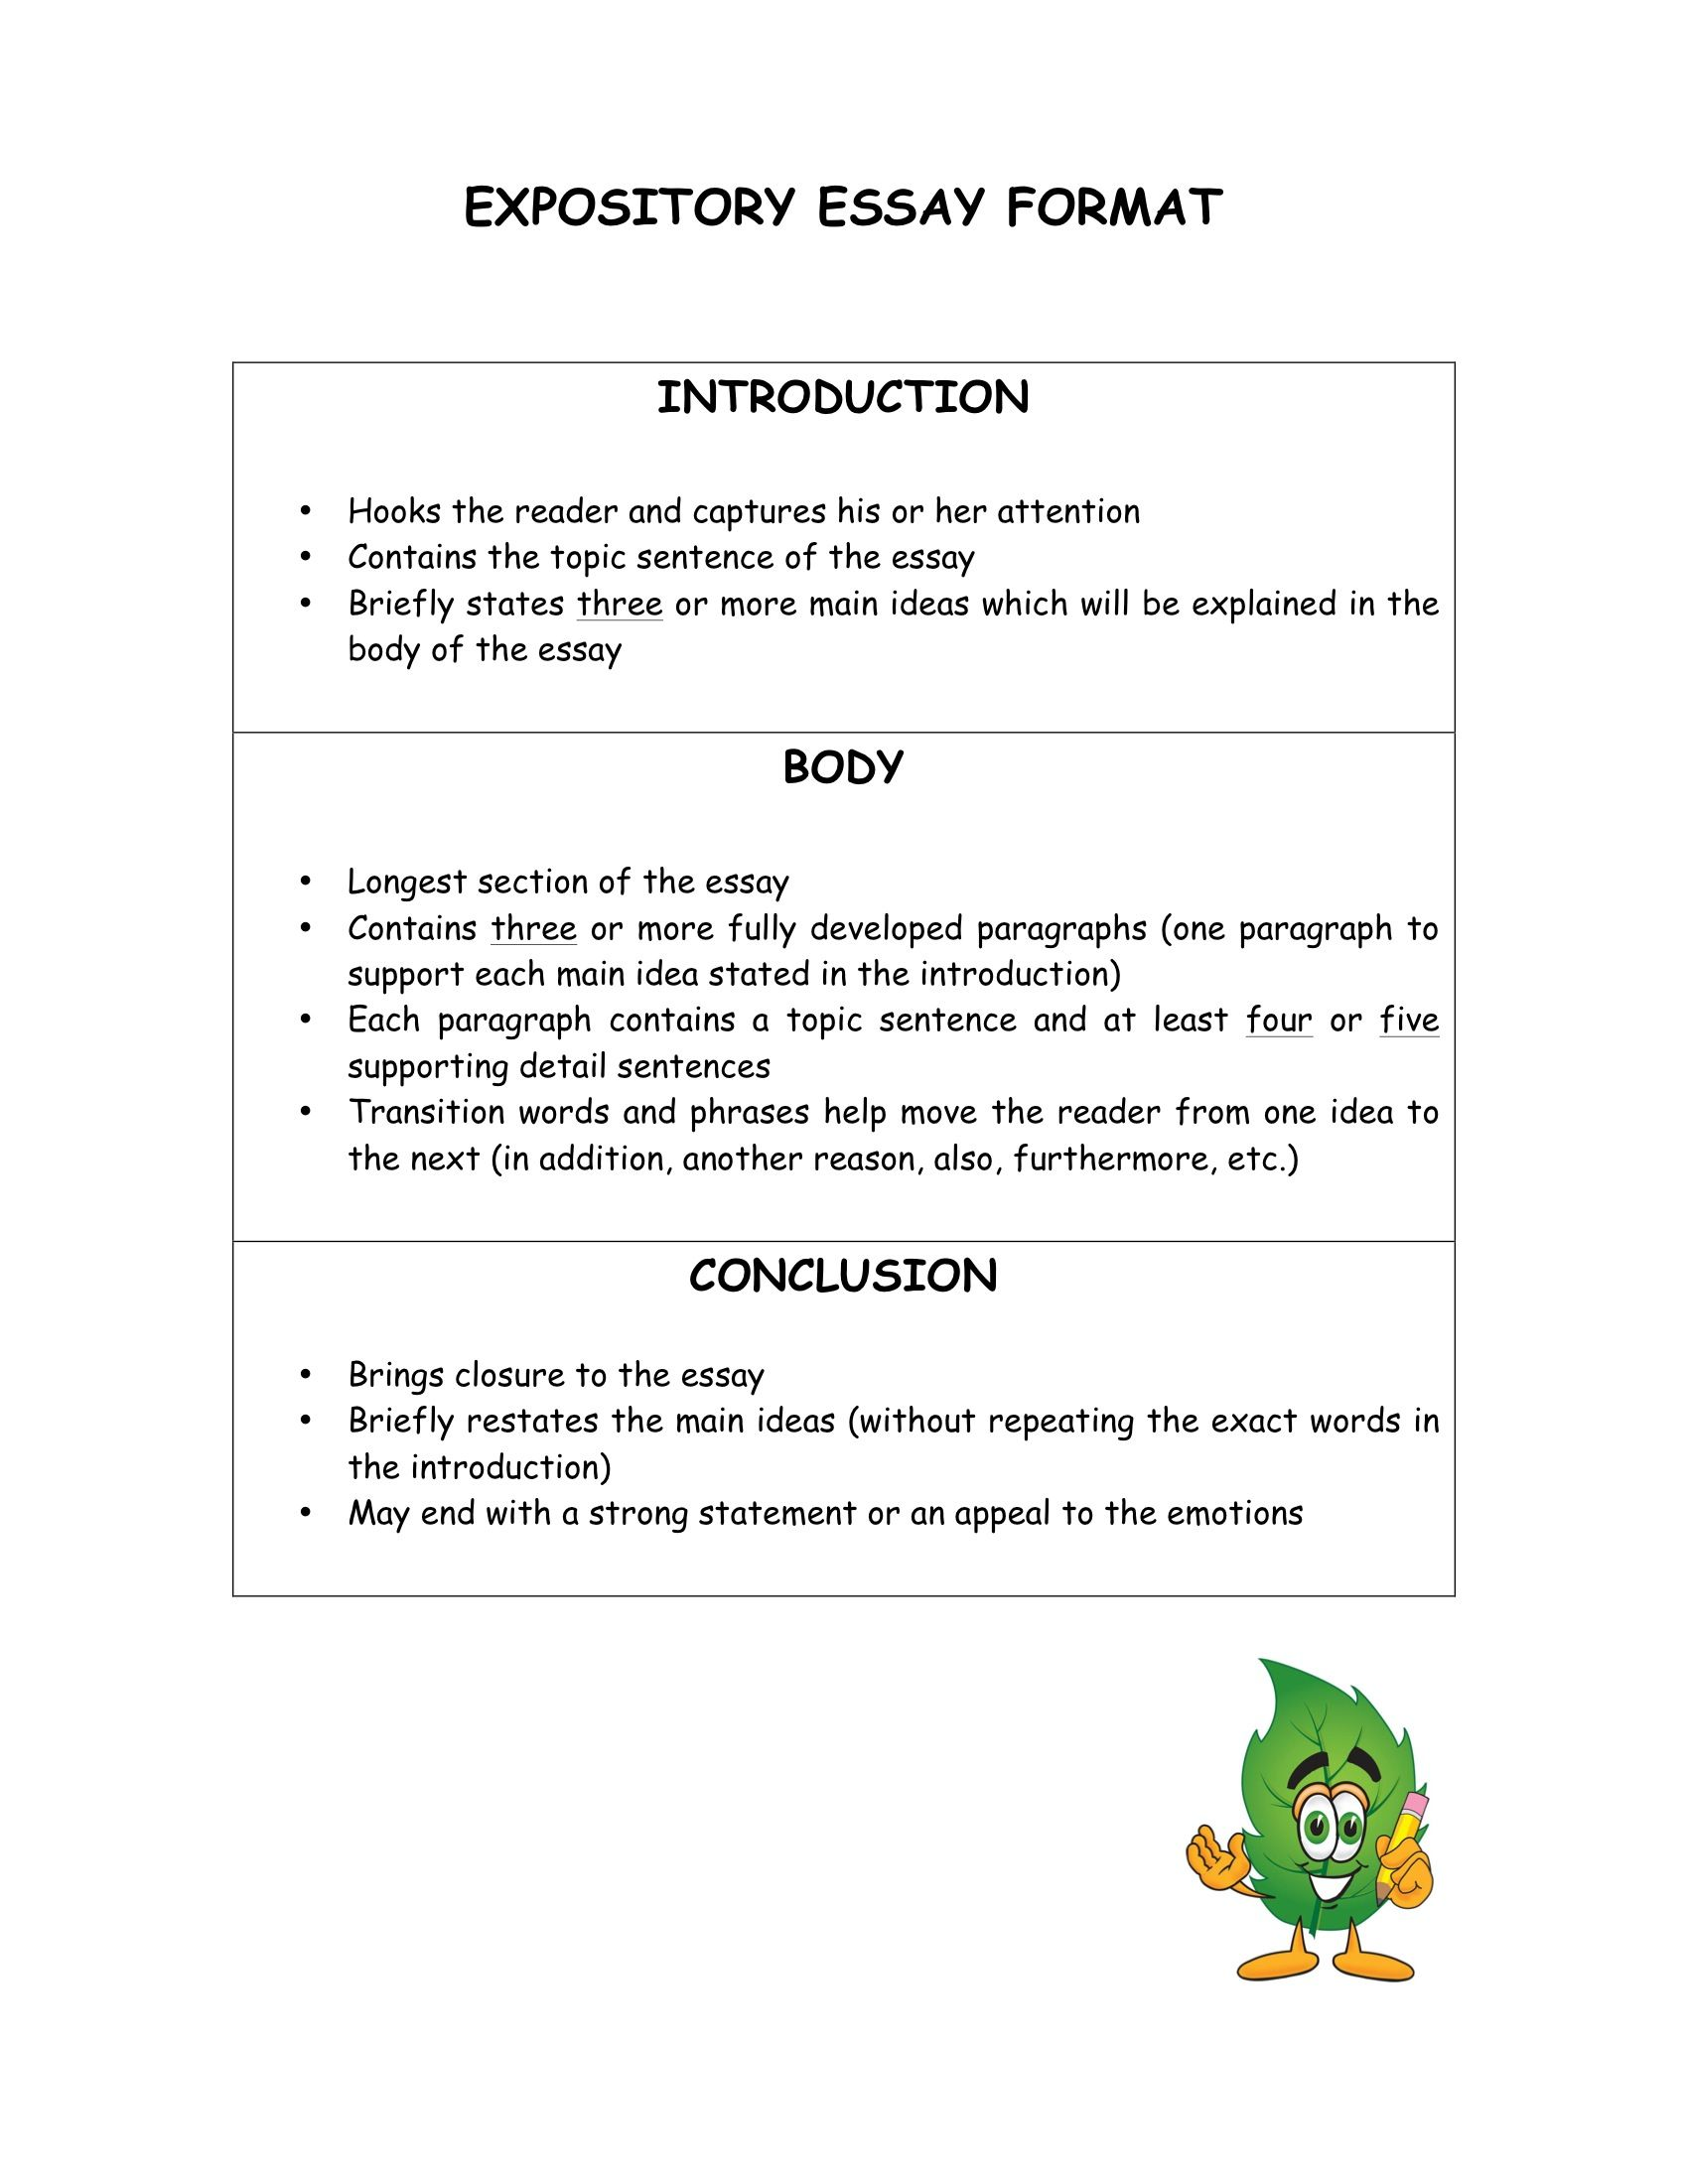 Expositary essay structure